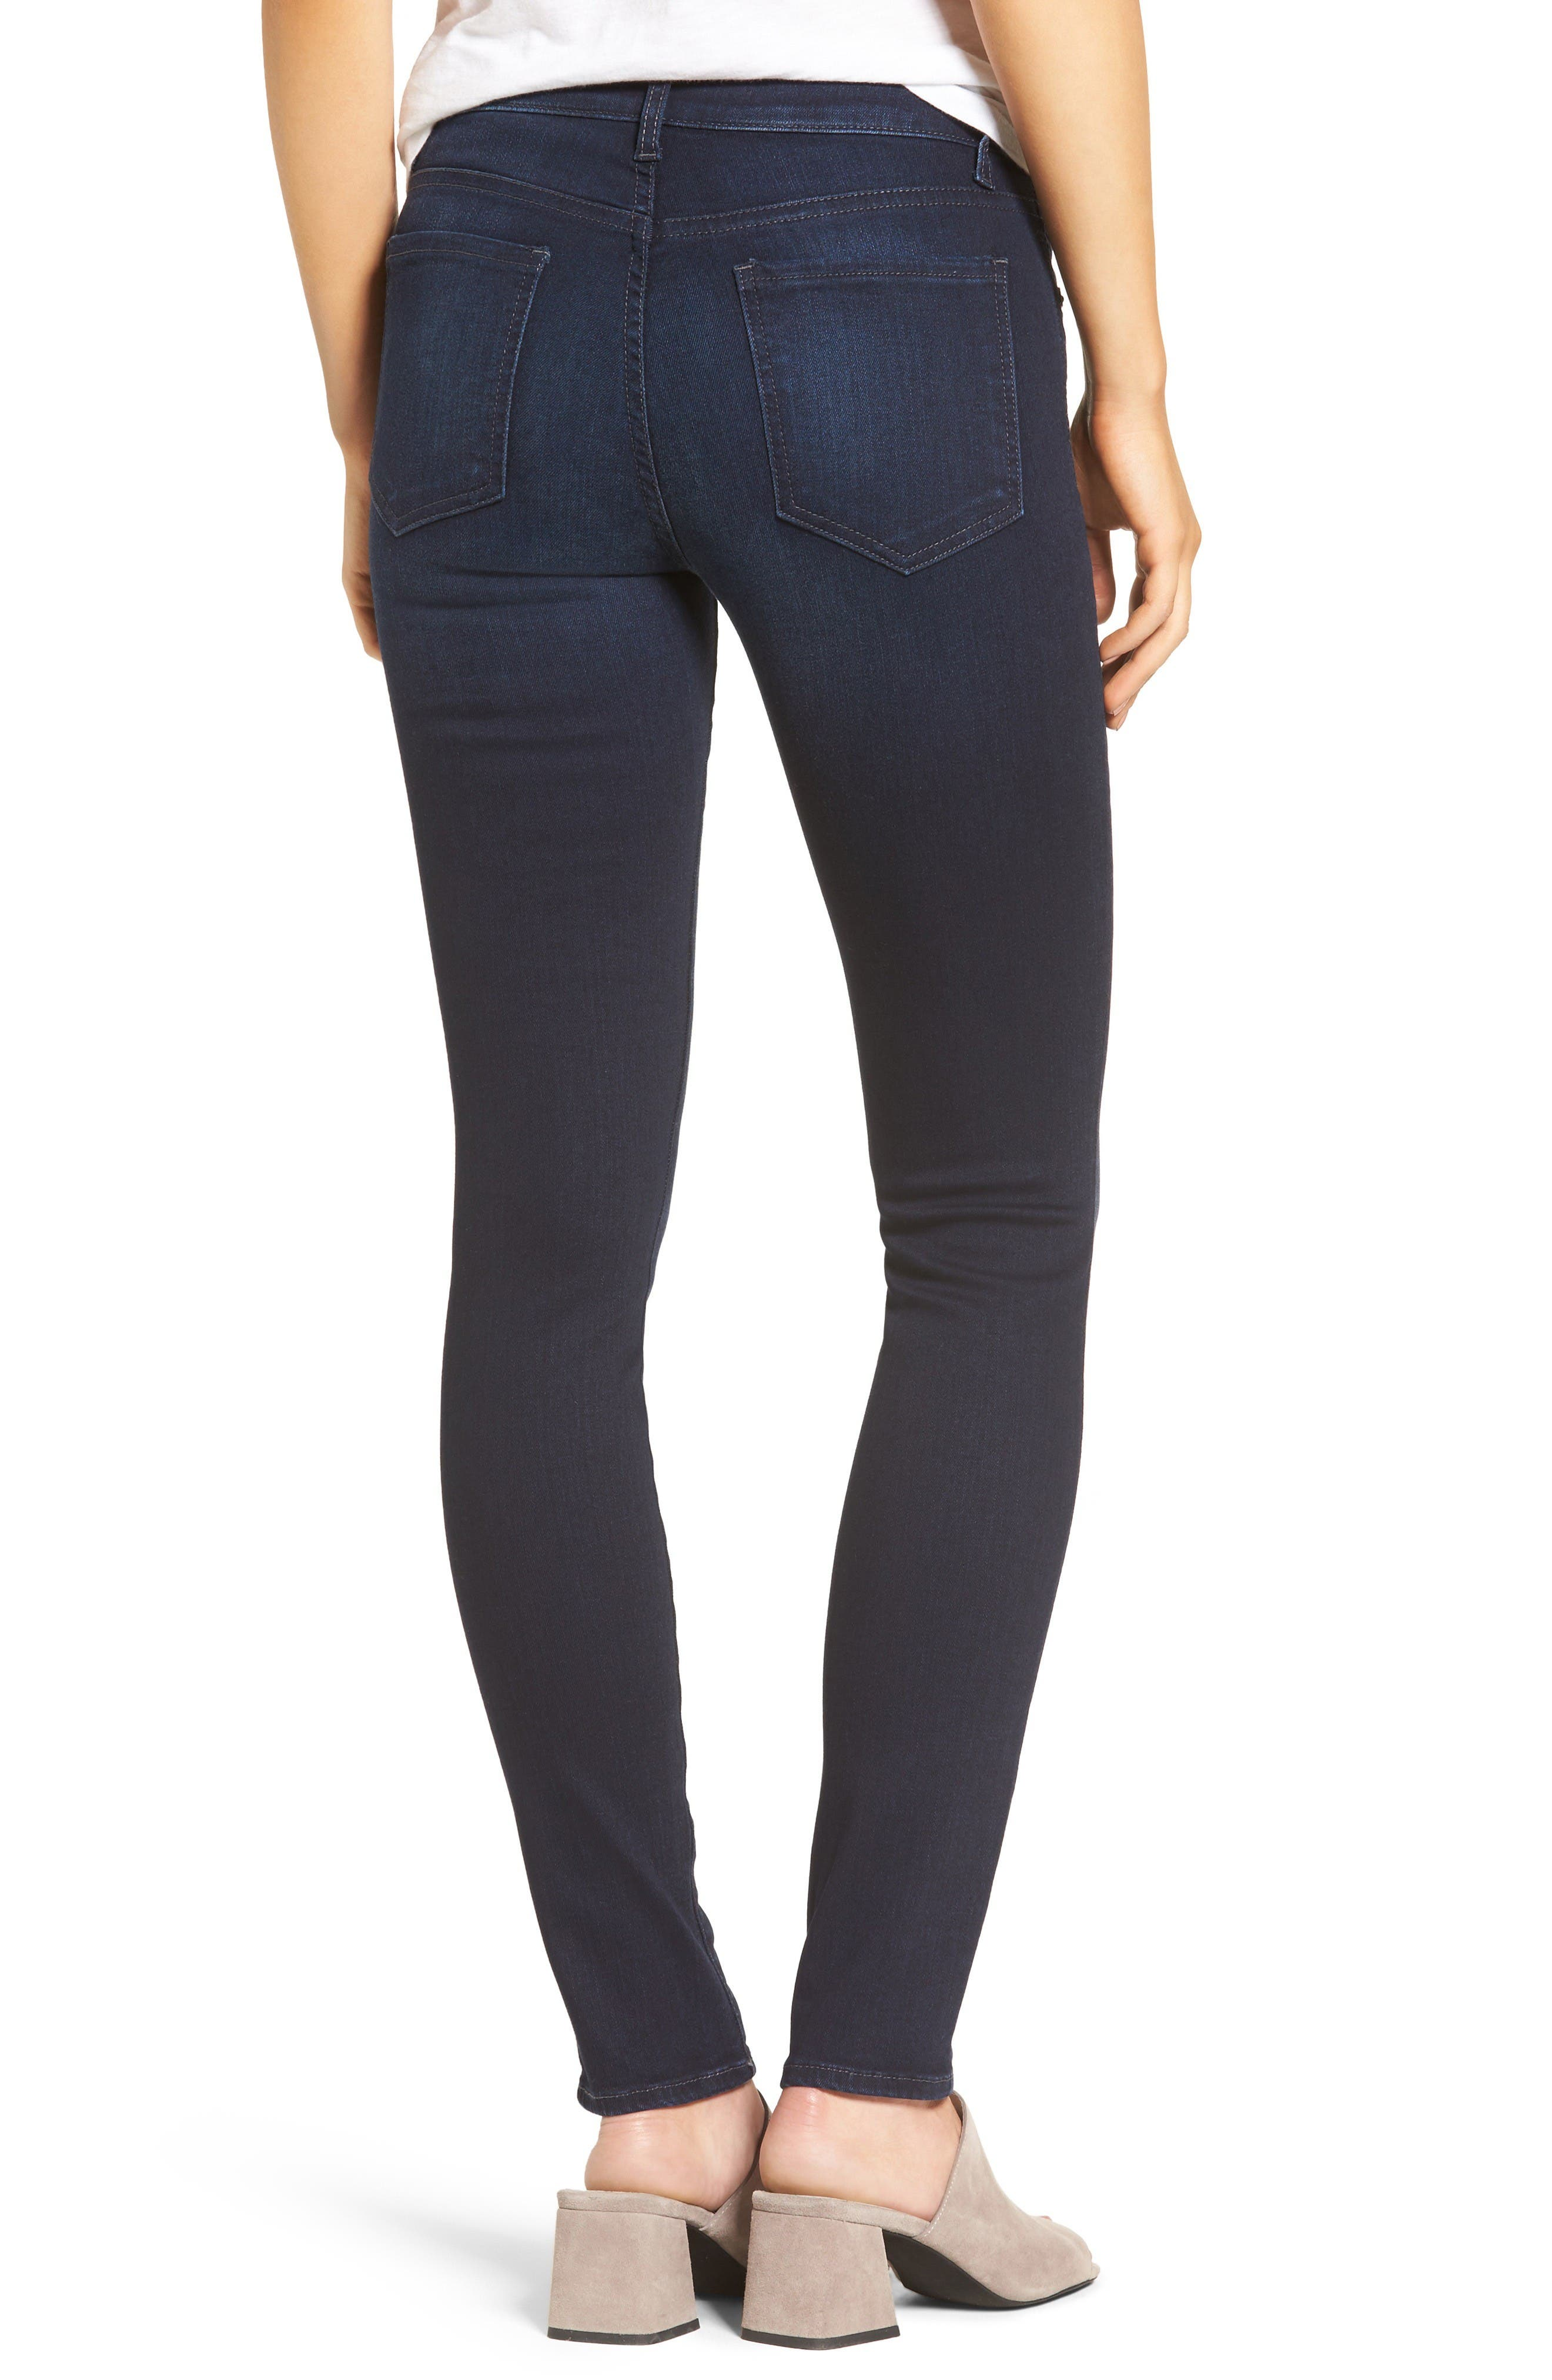 Alternate Image 2  - KUT from the Kloth Diana Stretch Skinny Jeans (Gained) (Regular & Petite)